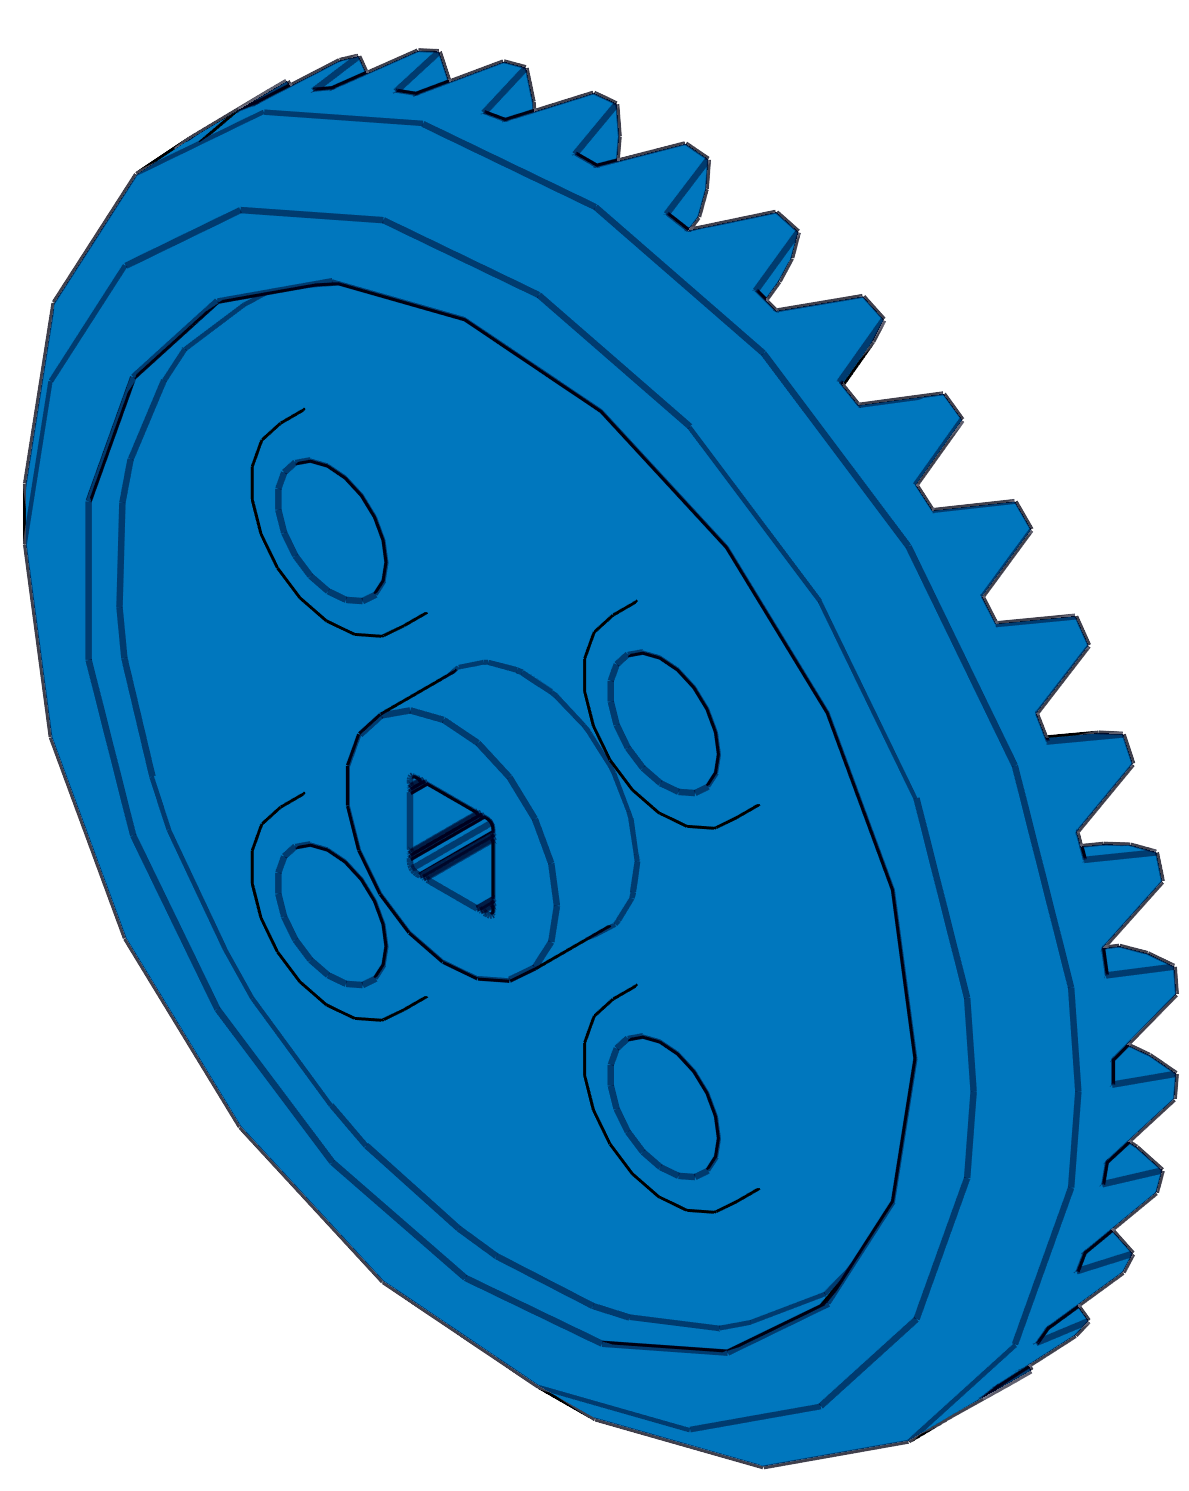 VEX IQ 36 Tooth Crown Gear